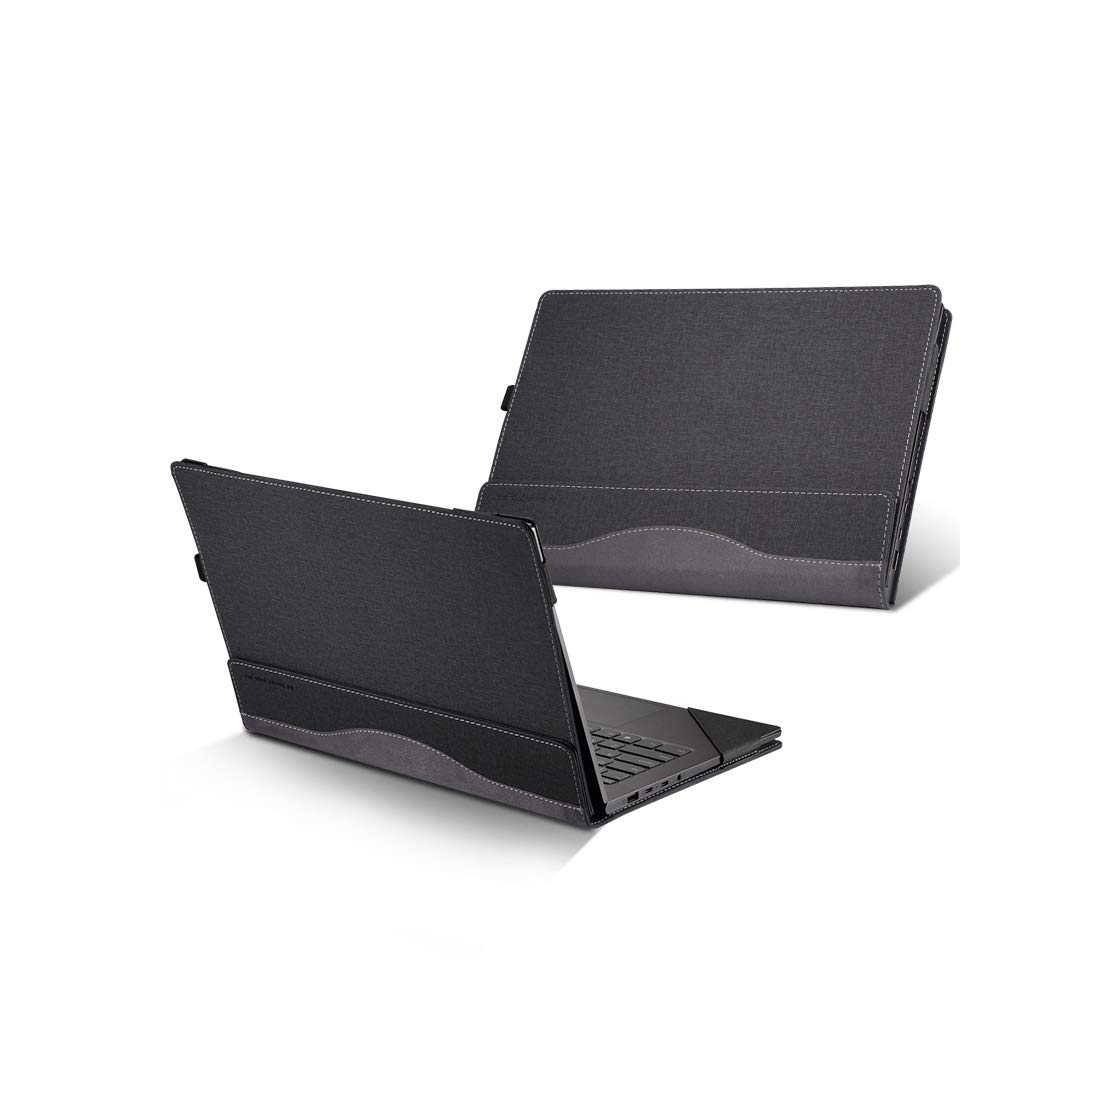 Honeycase HpSpectreX36015.6inchCase,PULeatherFolioStandHardCoverCompatible forHpSpectrex36015ttouch/15-CH011/15-BL000 Series 15.6''2in1LaptopSleeve(NOTFIT15-AP000Series),Grey by Honeycase (Image #3)